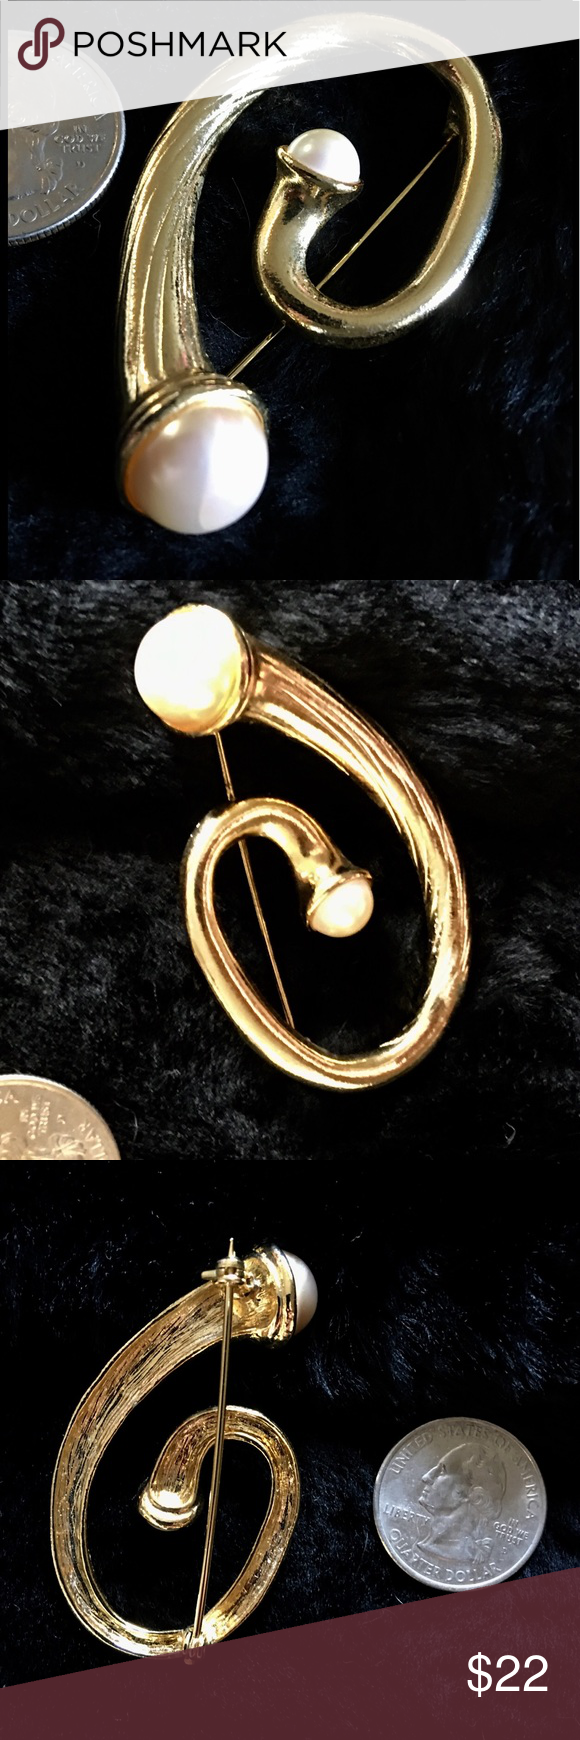 Gold Tone Pearl Brooch Pretty pin with ribbed body And faux pearl accents. Very pretty Jewelry Brooches